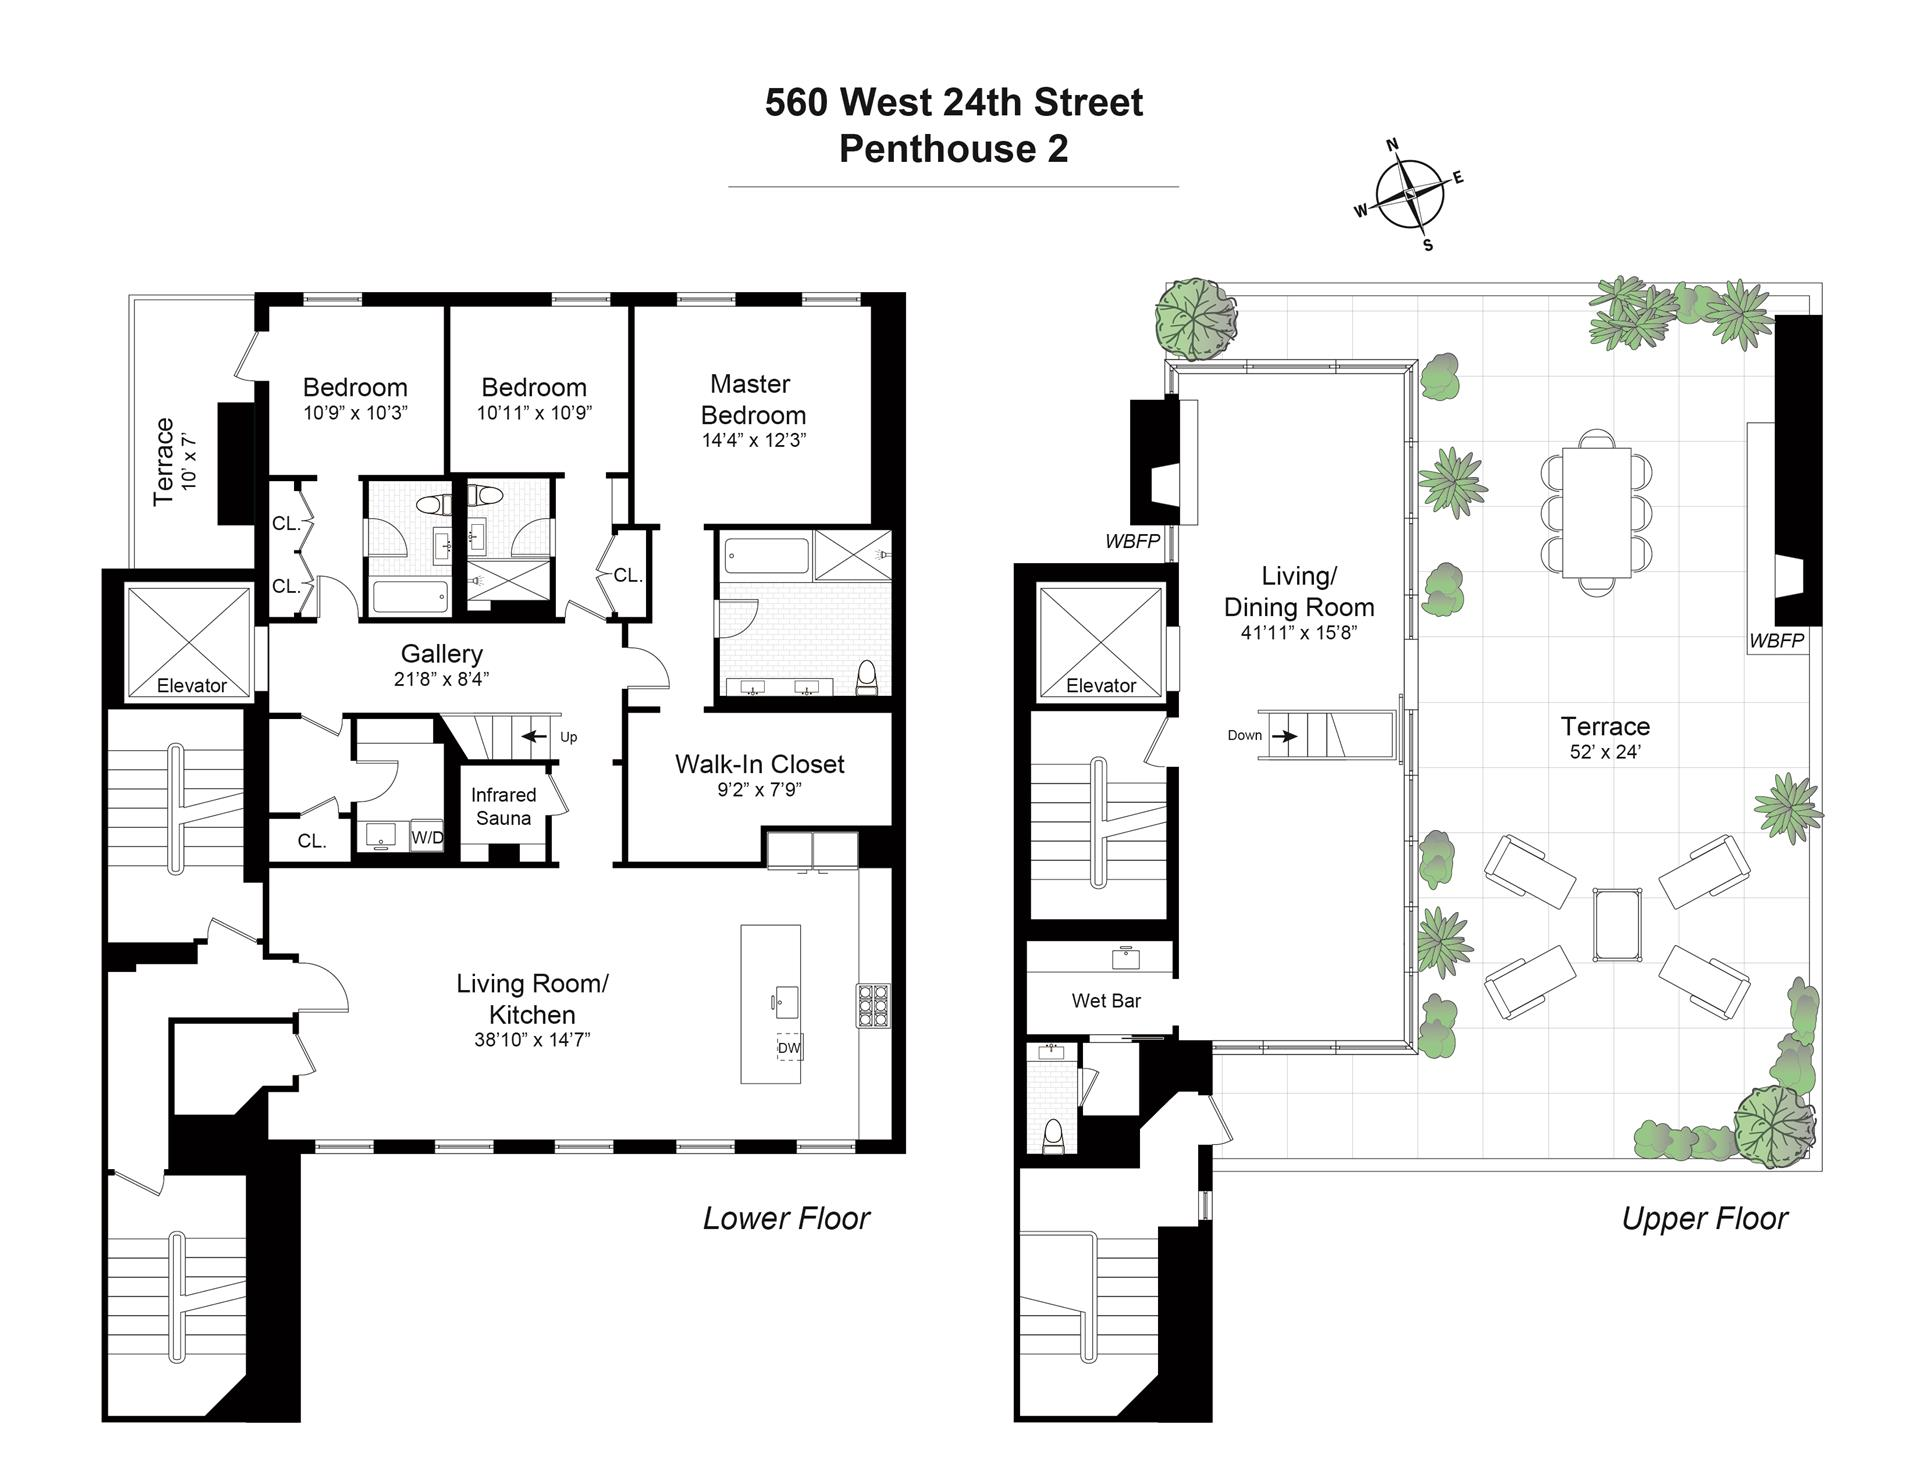 Floor plan of Five Sixty, 560 West 24th St, PH2 - Chelsea, New York